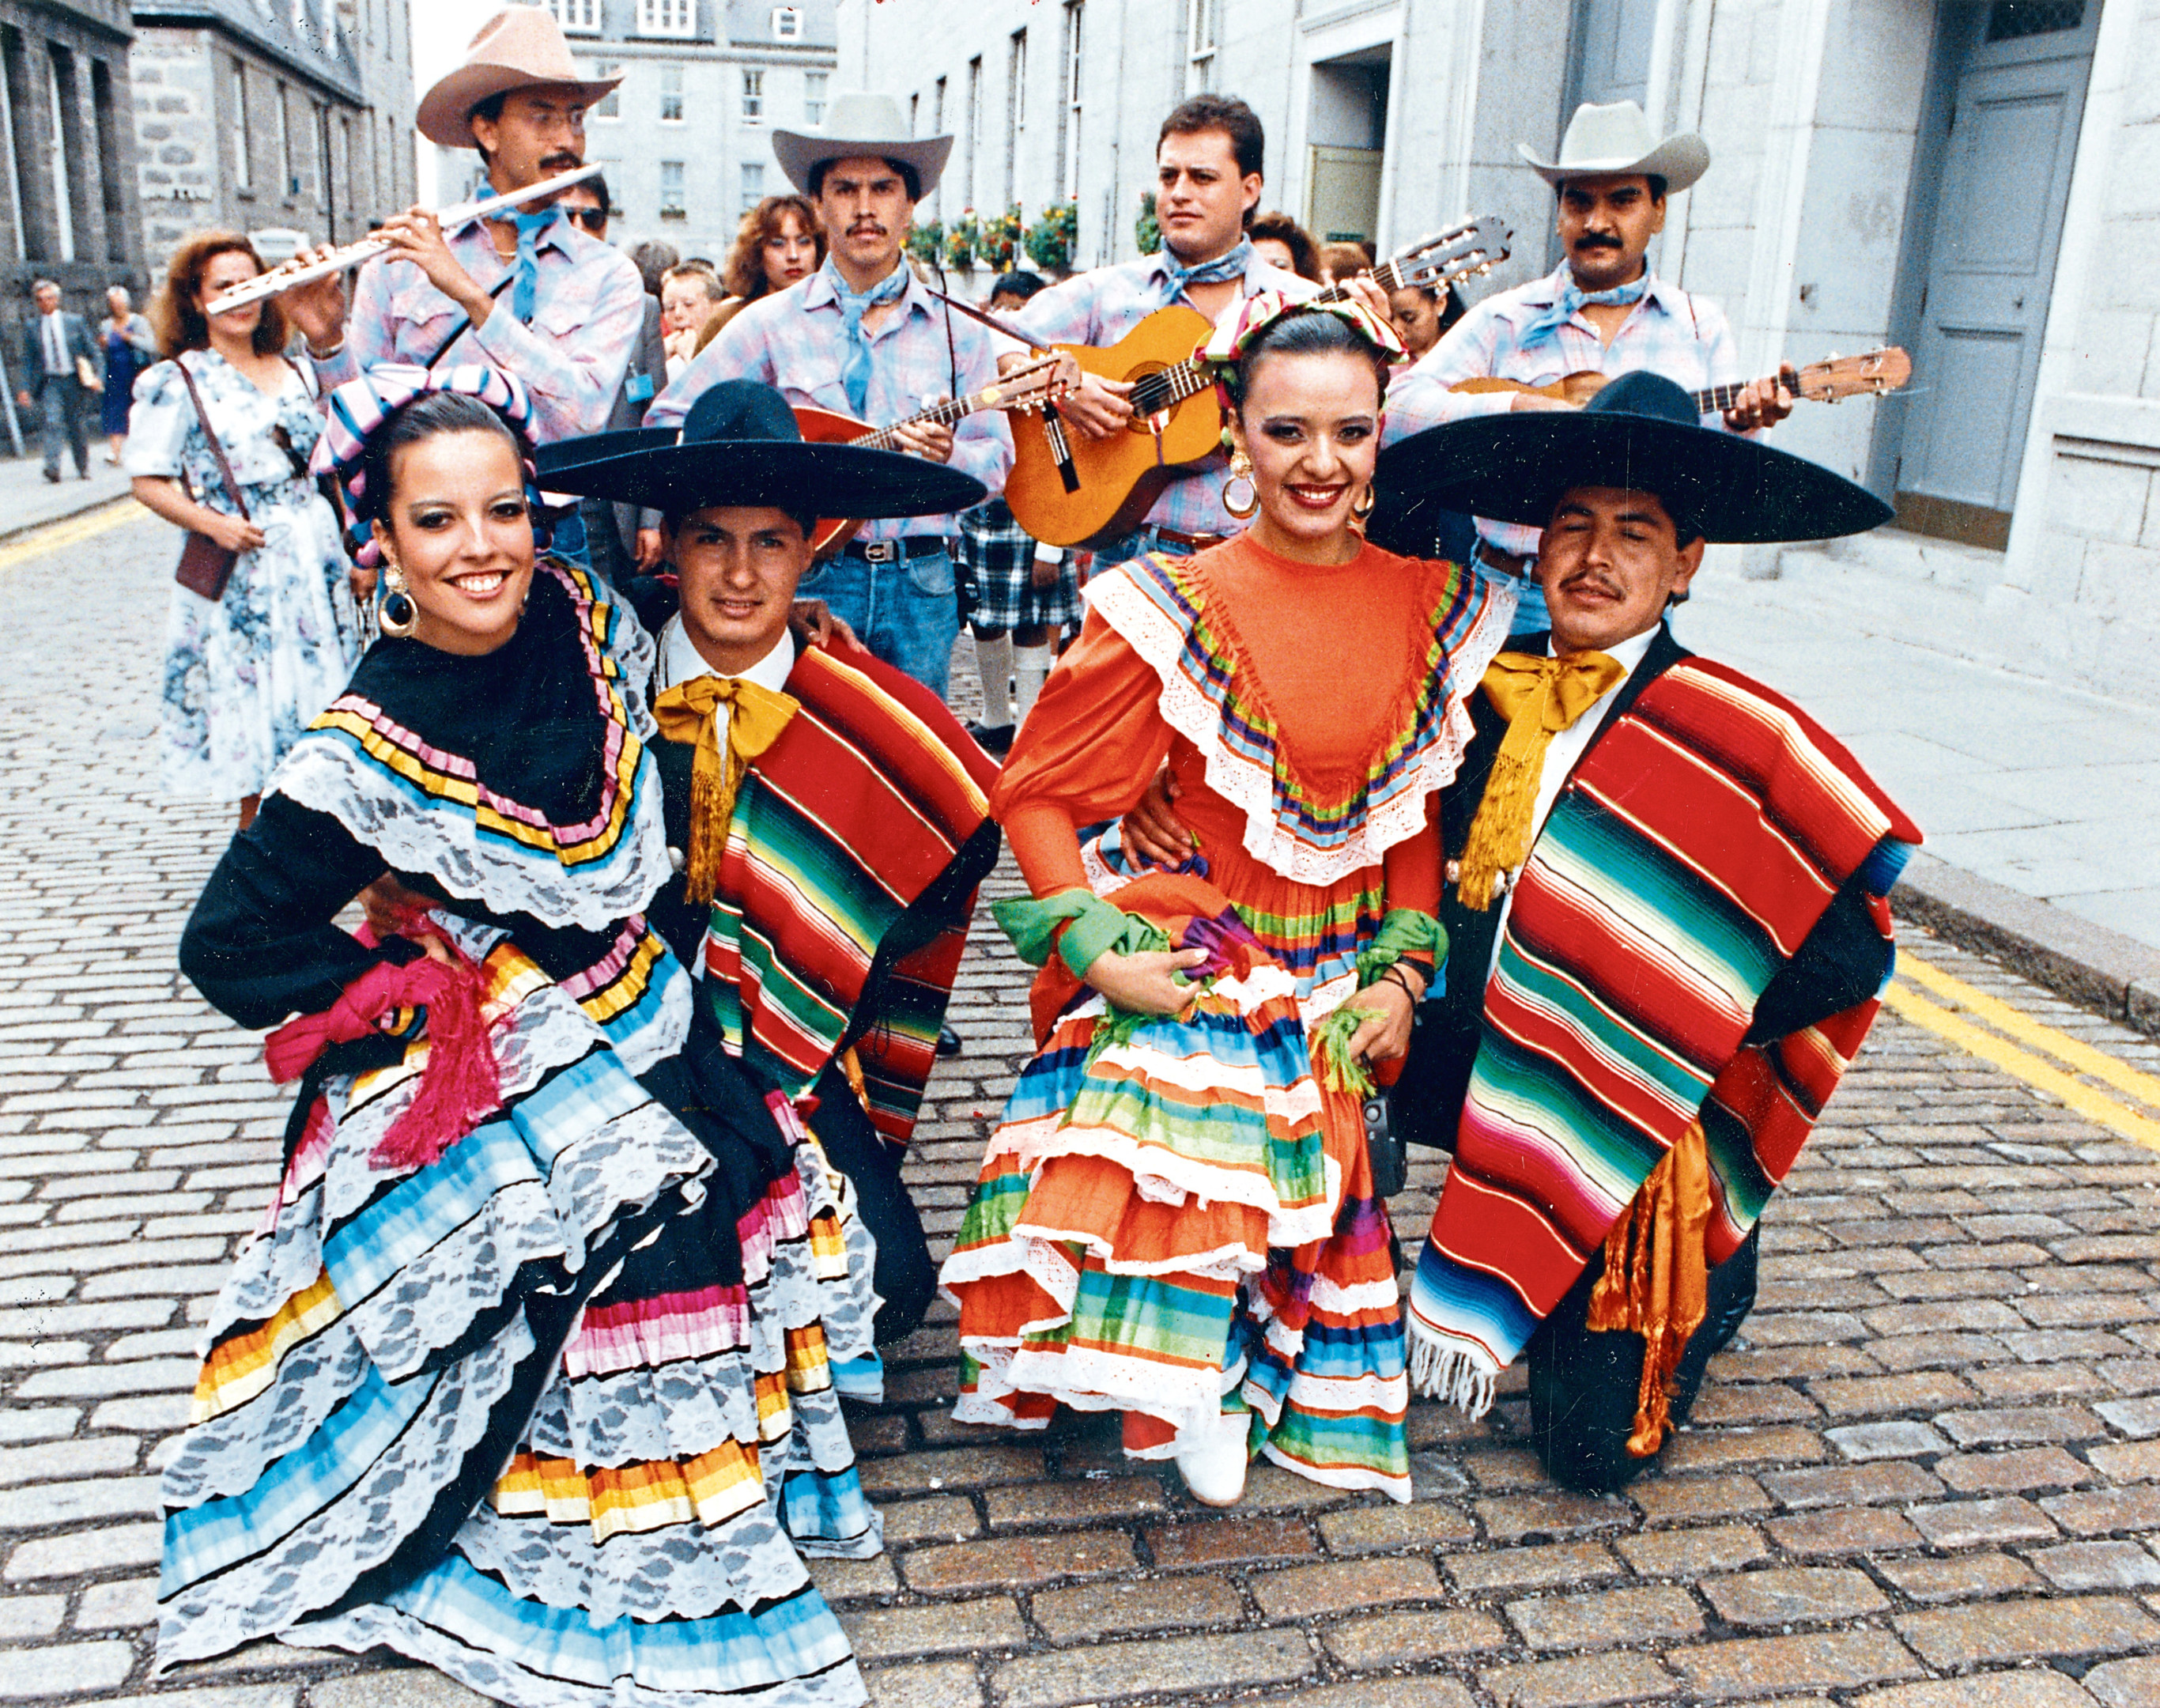 """Aberdeen International Youth Festival 1990-08-08_05 (C)AJL Used EE 26.07.1991, Used P&J 09.08.1990 """"Ballet Folkorico Universidad de Chihuahua from Mexico in their colourful dance costumes [outside the Music Hall on South Silver Street, Aberdeen]."""""""